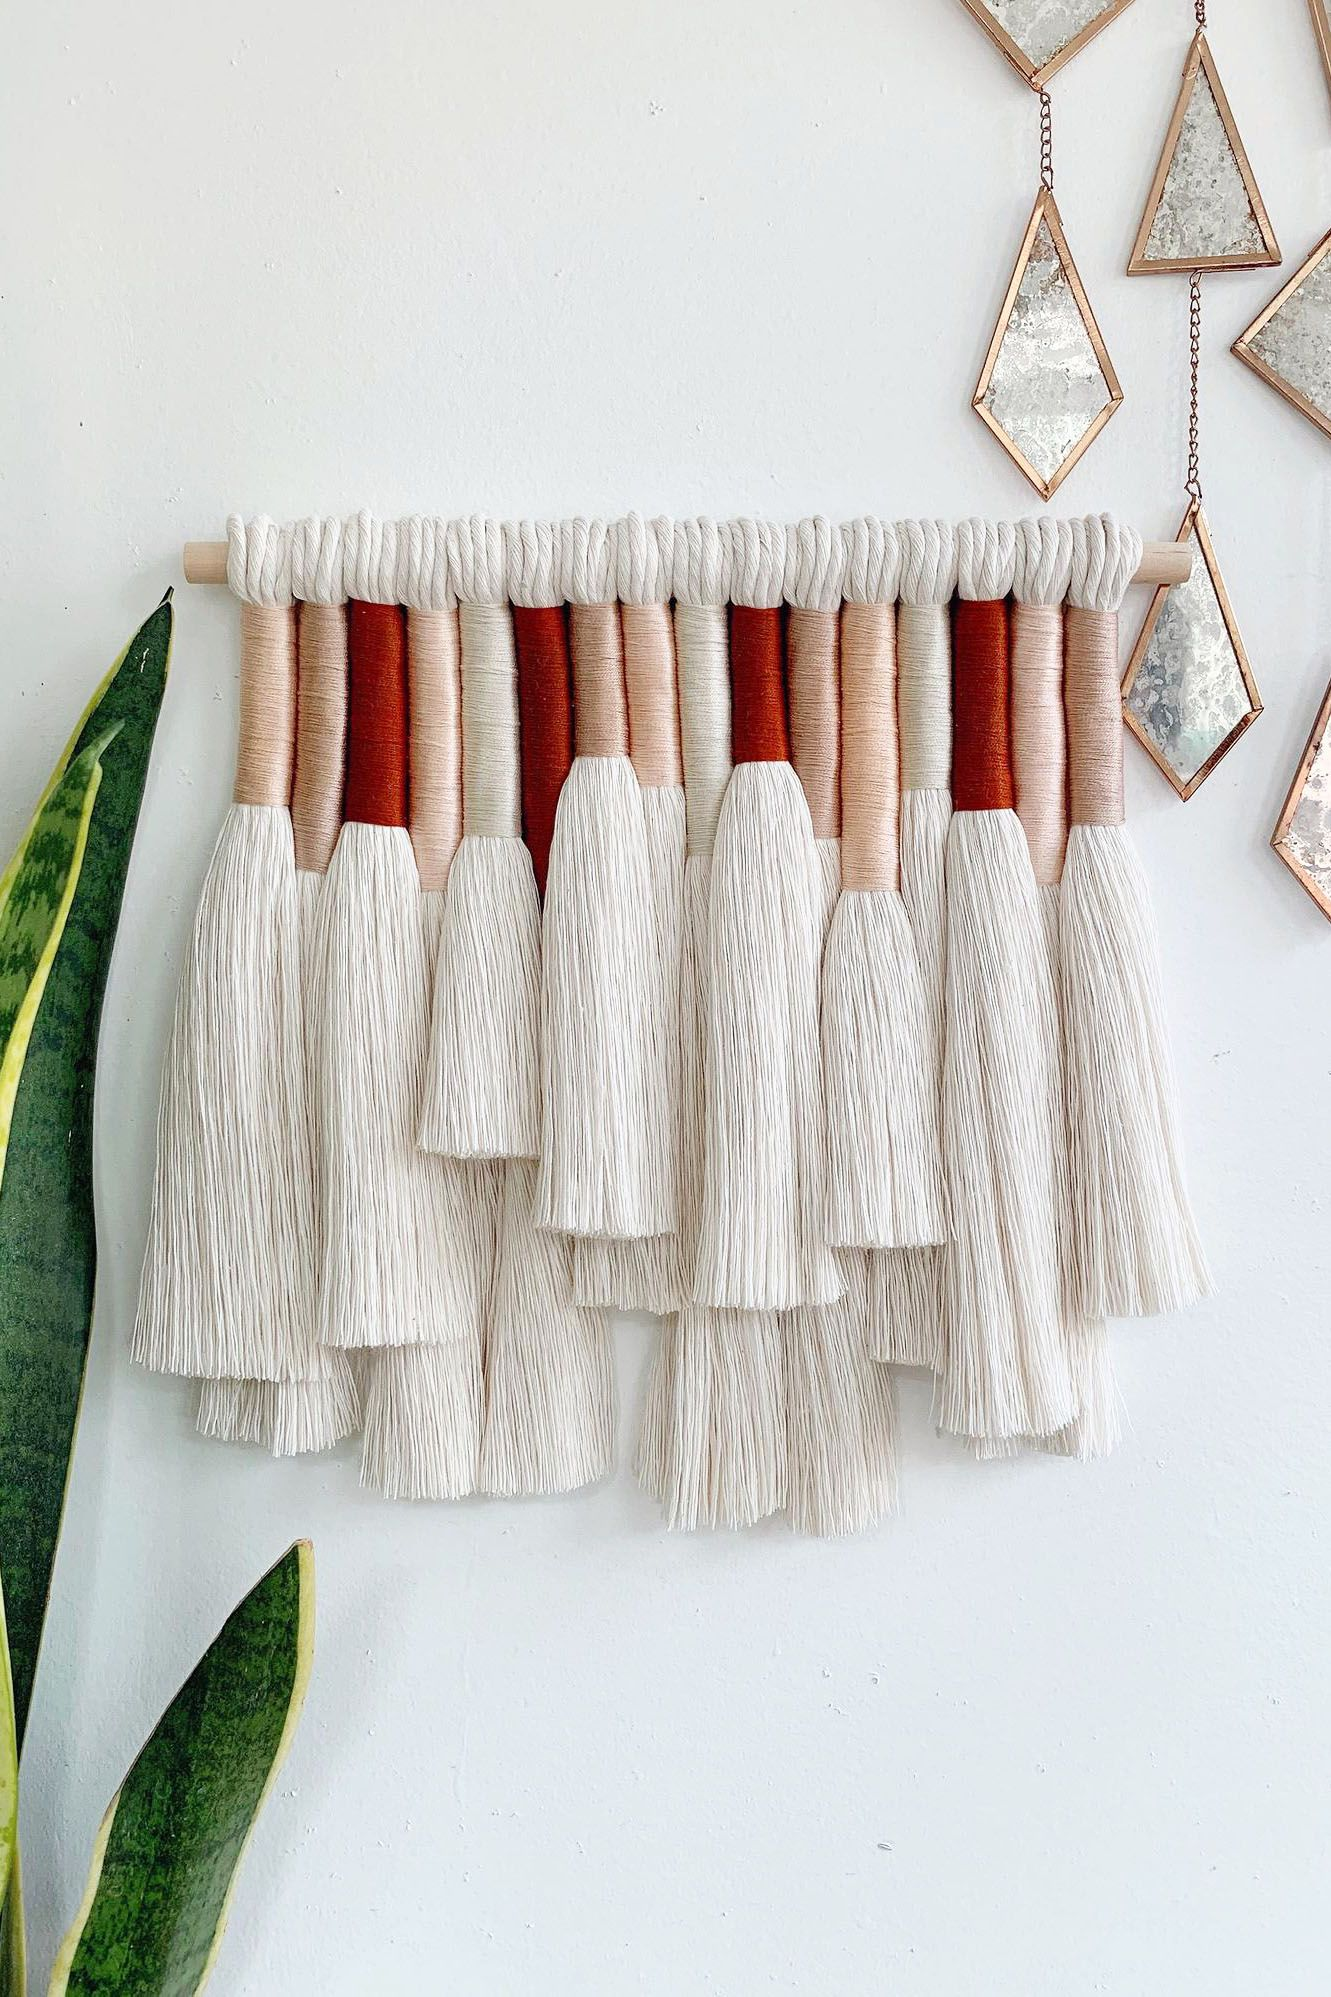 Stunning woven wall art for a living room or bedroom. A macrame wall hanging made with fine combed cotton rope and cotton thread adds a boho vibe to your home decor.